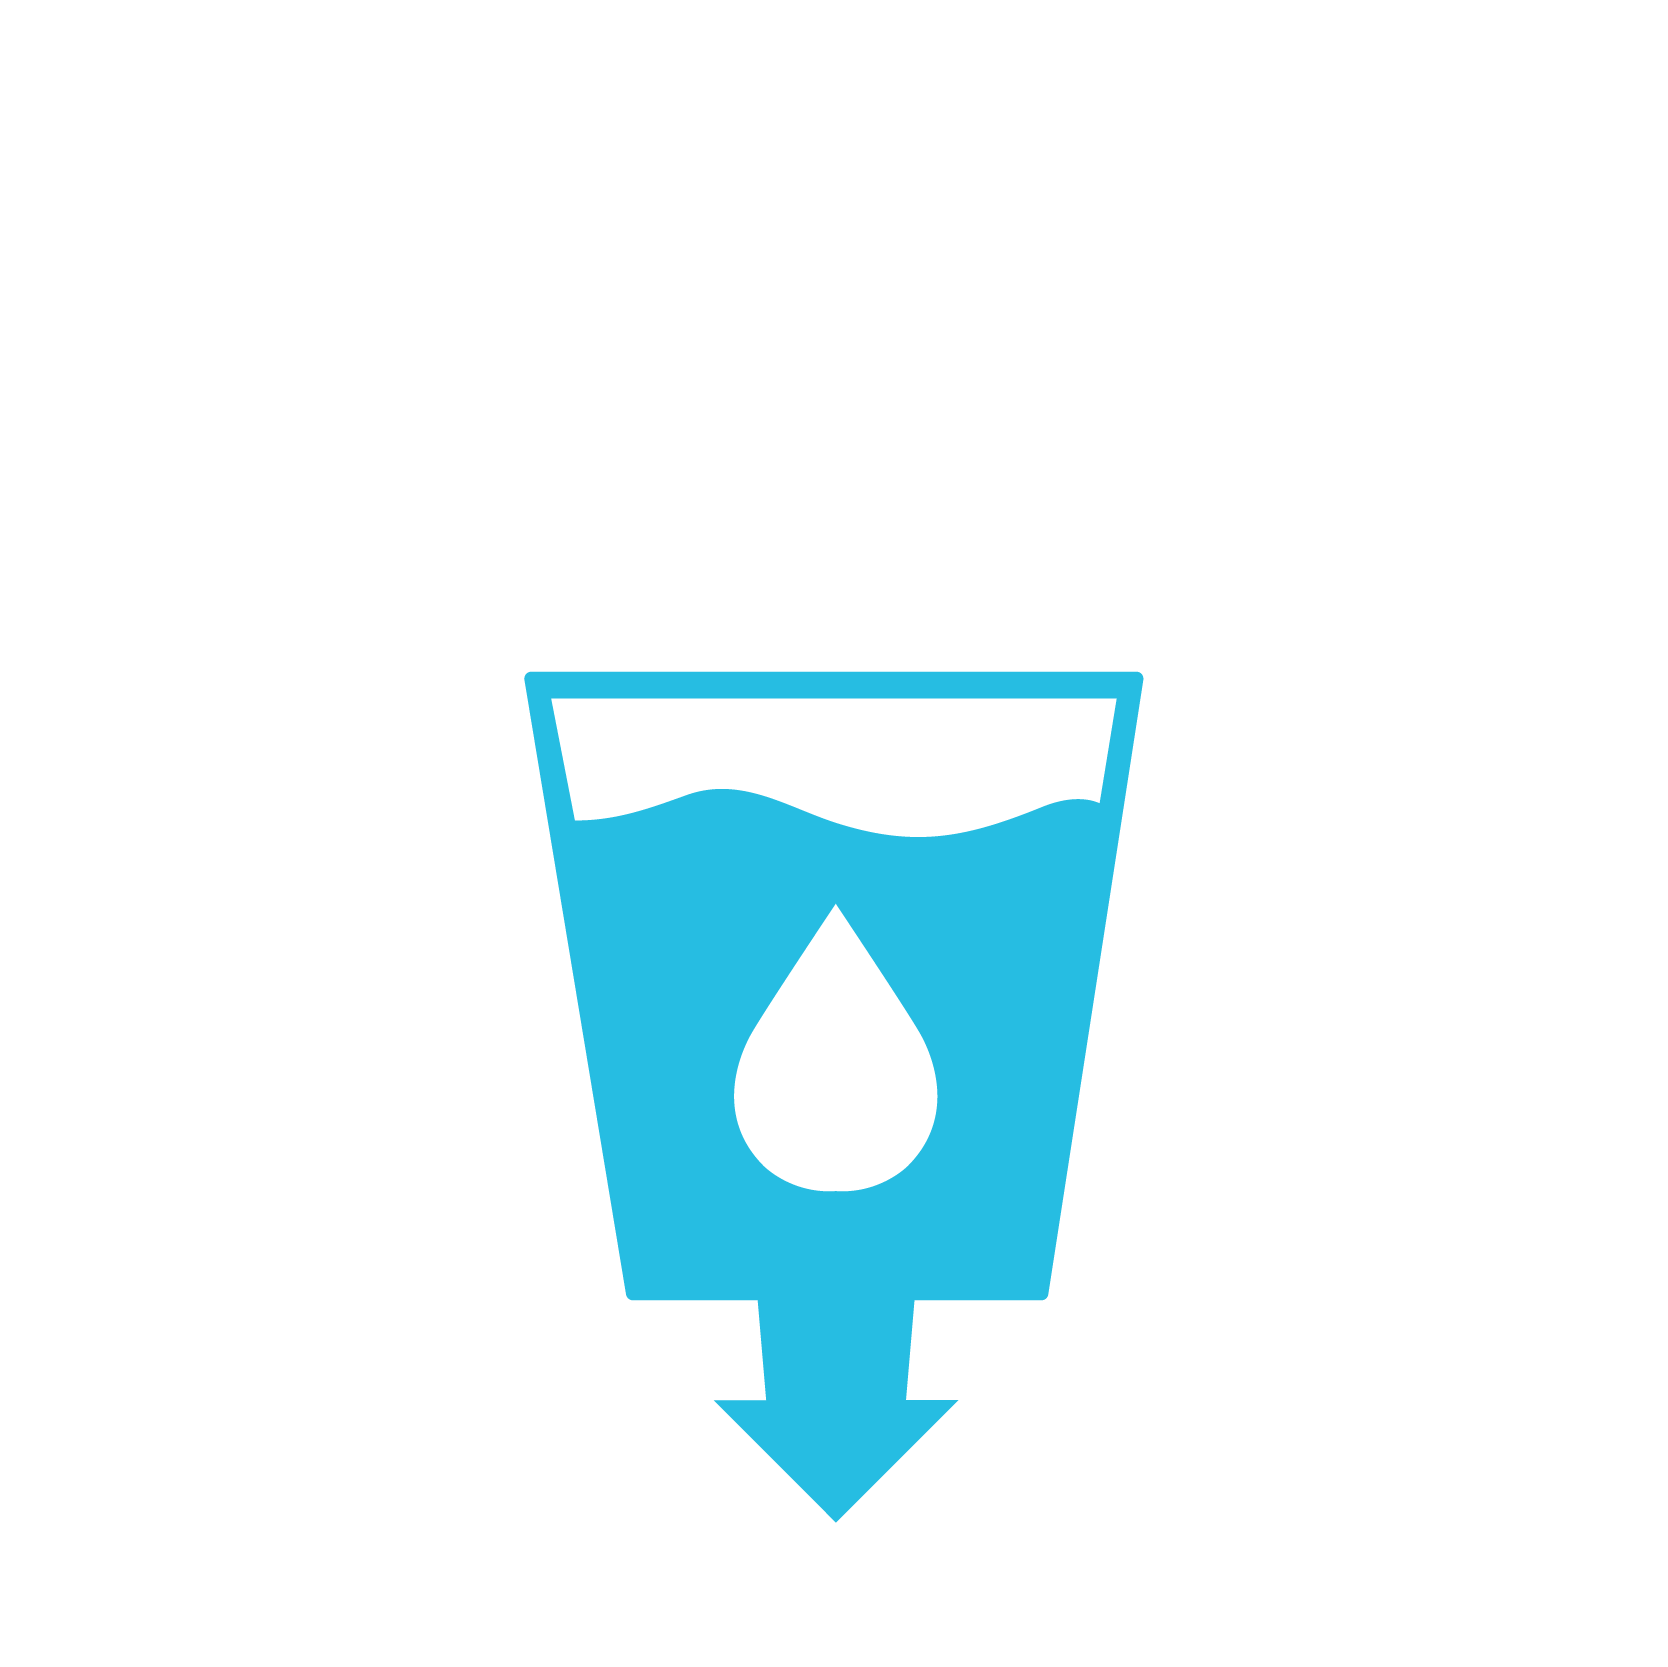 Goal 06: Clean Water and Sanitation.